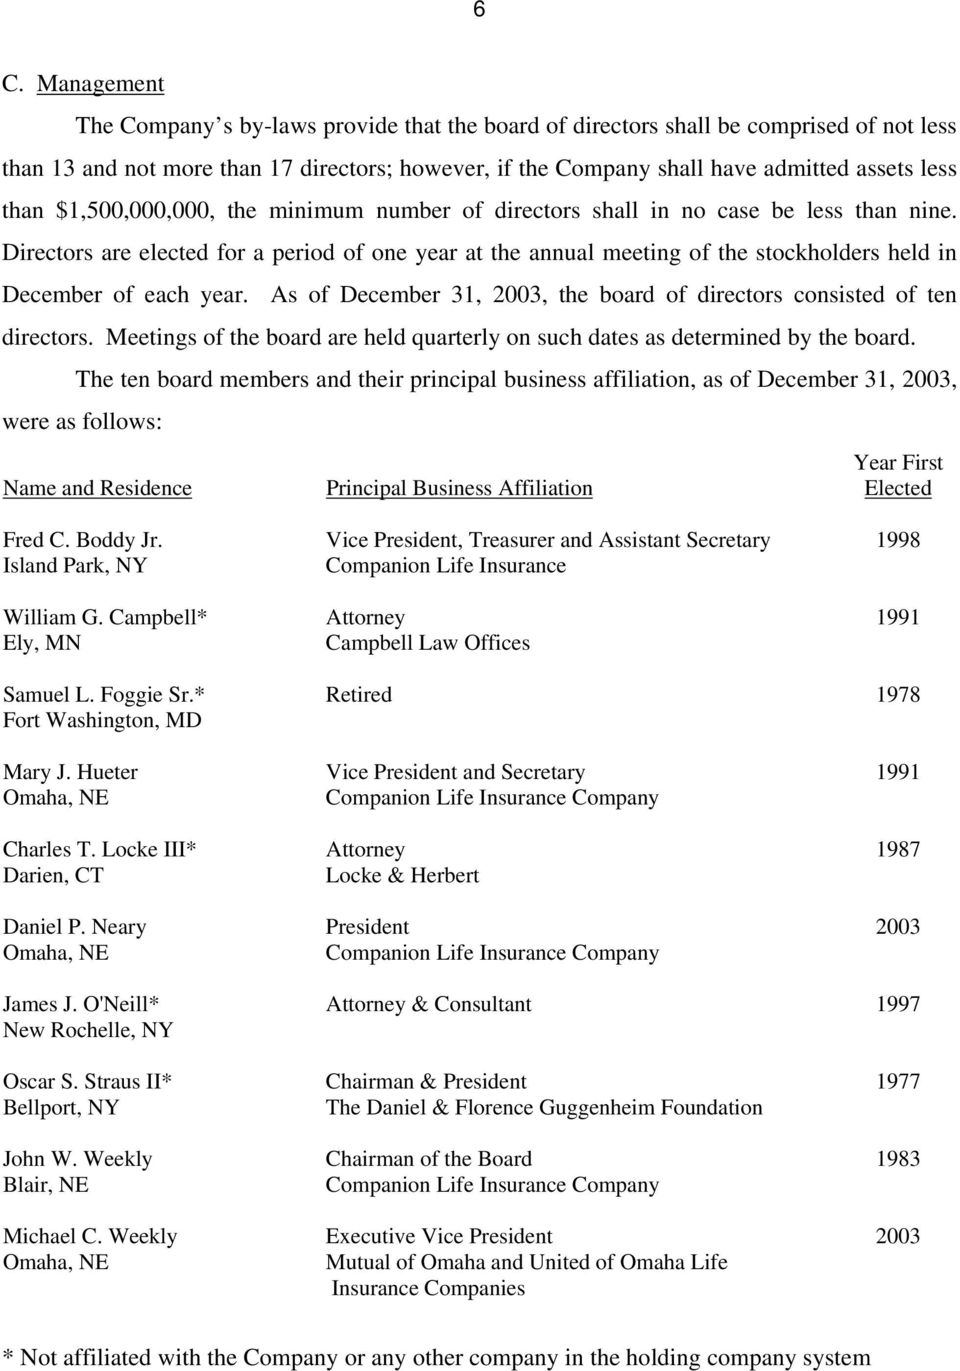 Directors are elected for a period of one year at the annual meeting of the stockholders held in December of each year. As of December 31, 2003, the board of directors consisted of ten directors.